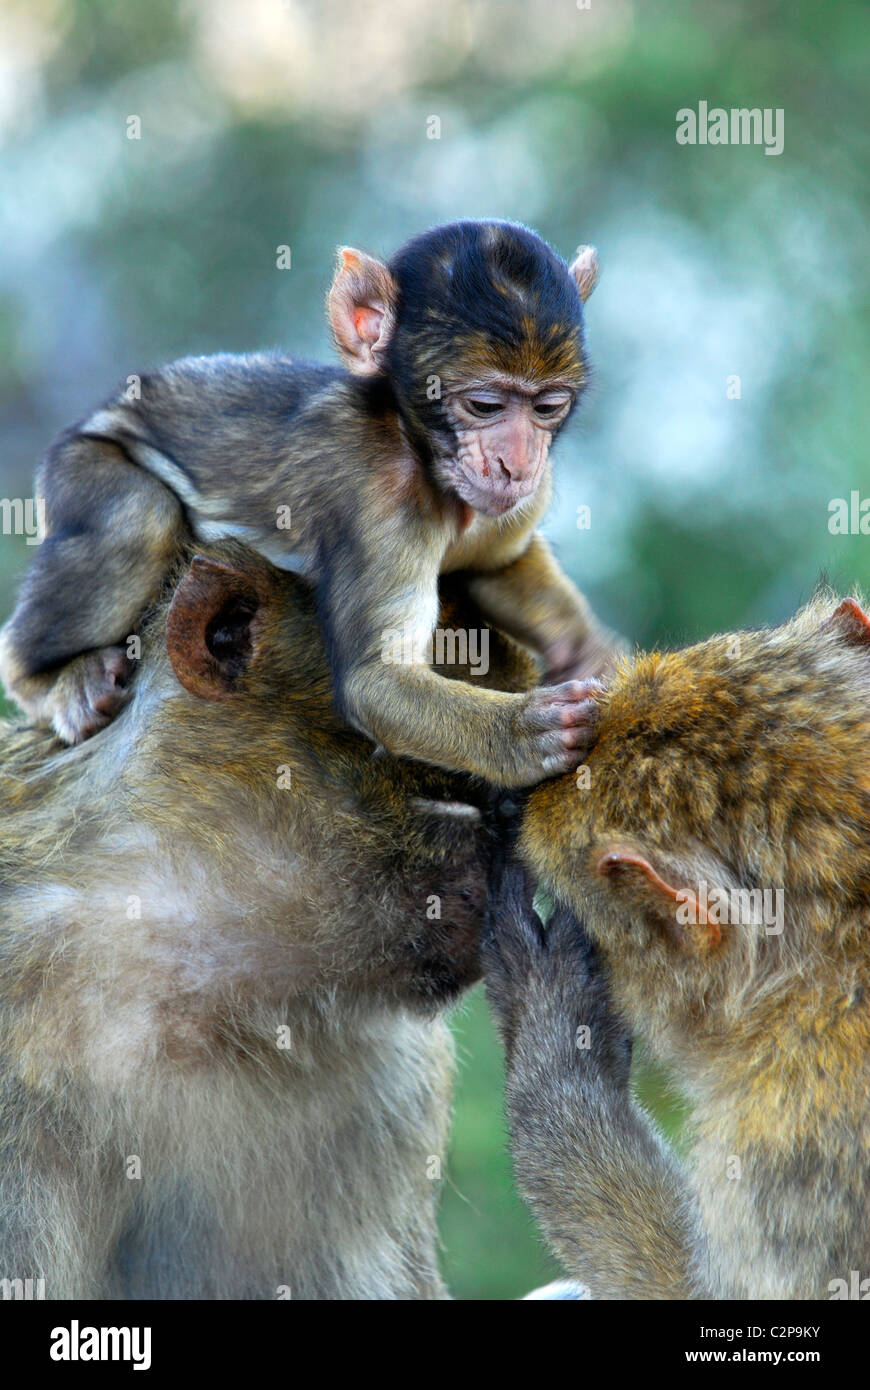 Baby Barbary Macaque sitting on it's mothers head preening another macaques fur for fleas - Stock Image